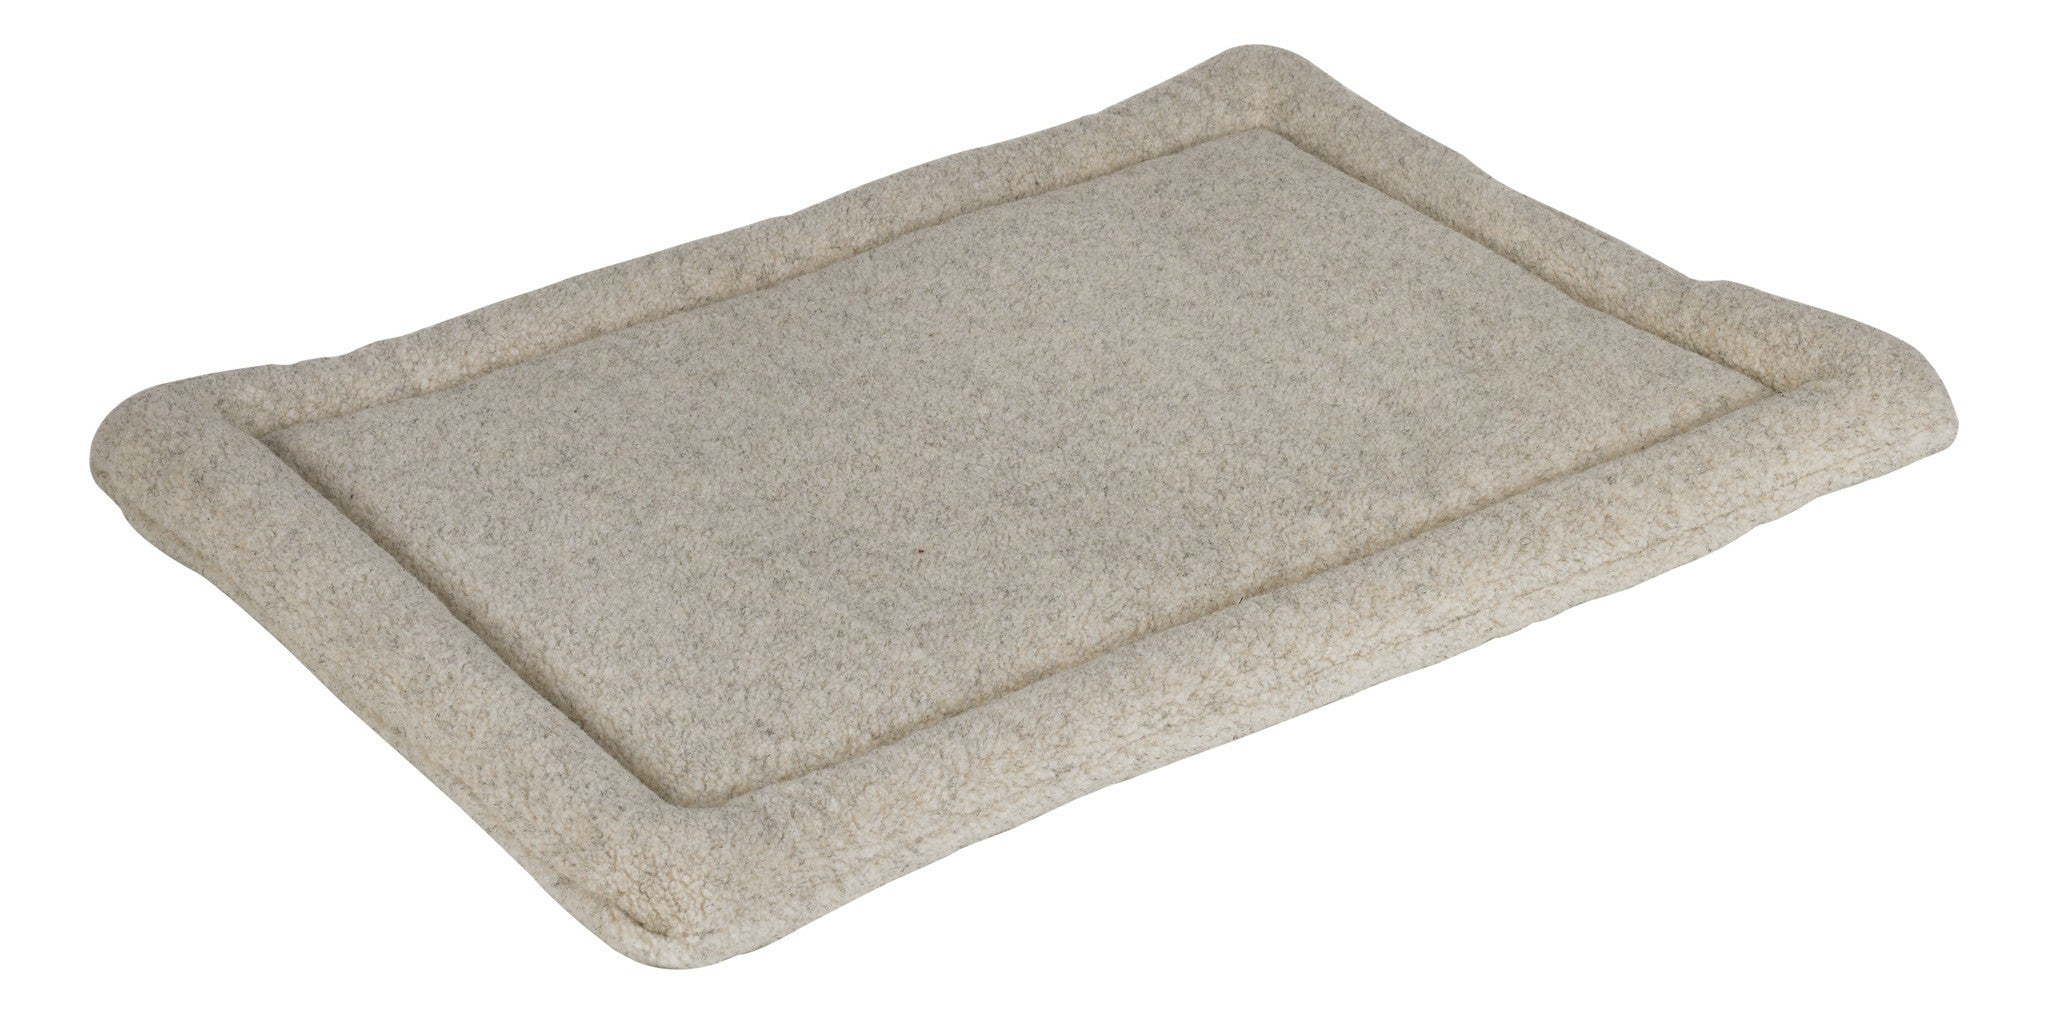 fashions cooling a home crate gel p mats beatrice mat save dog